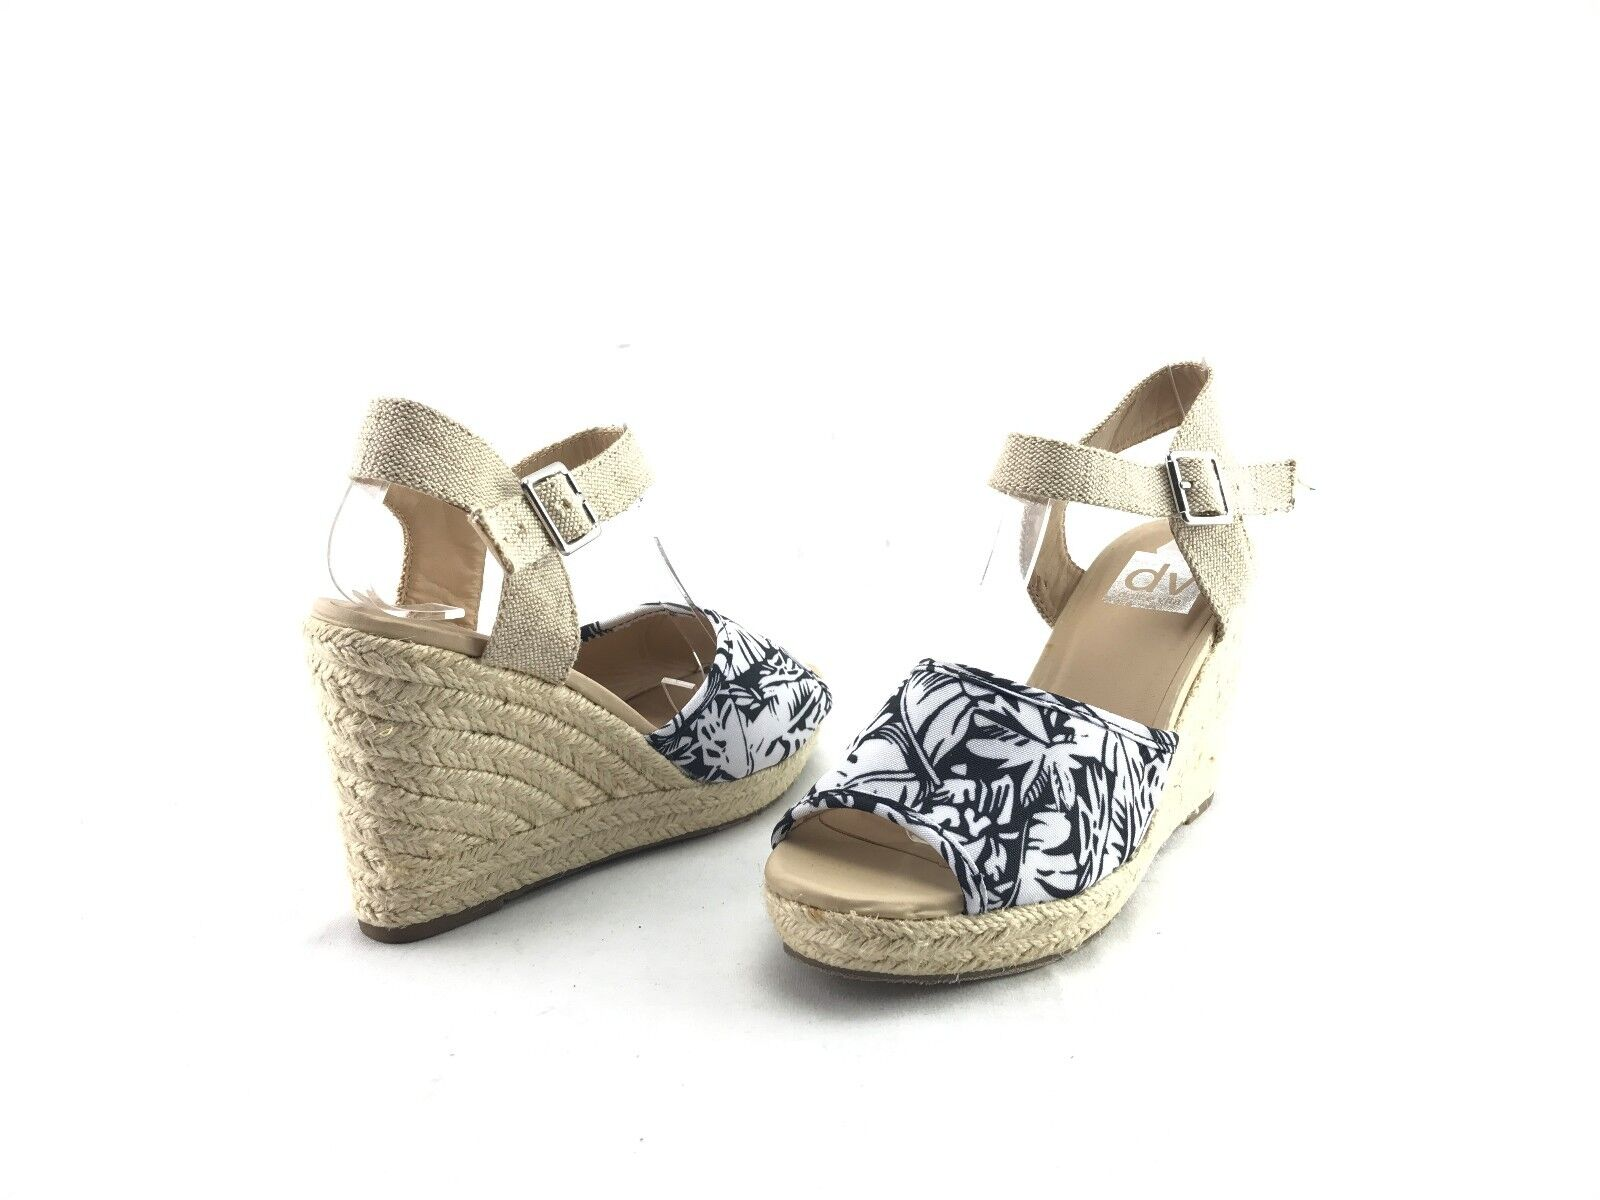 NEW Dolce Vita Damens's Beige Open Toe Strap 7 Wedge Sandales US Größe 7 Strap M Schuhes #A35 df099a